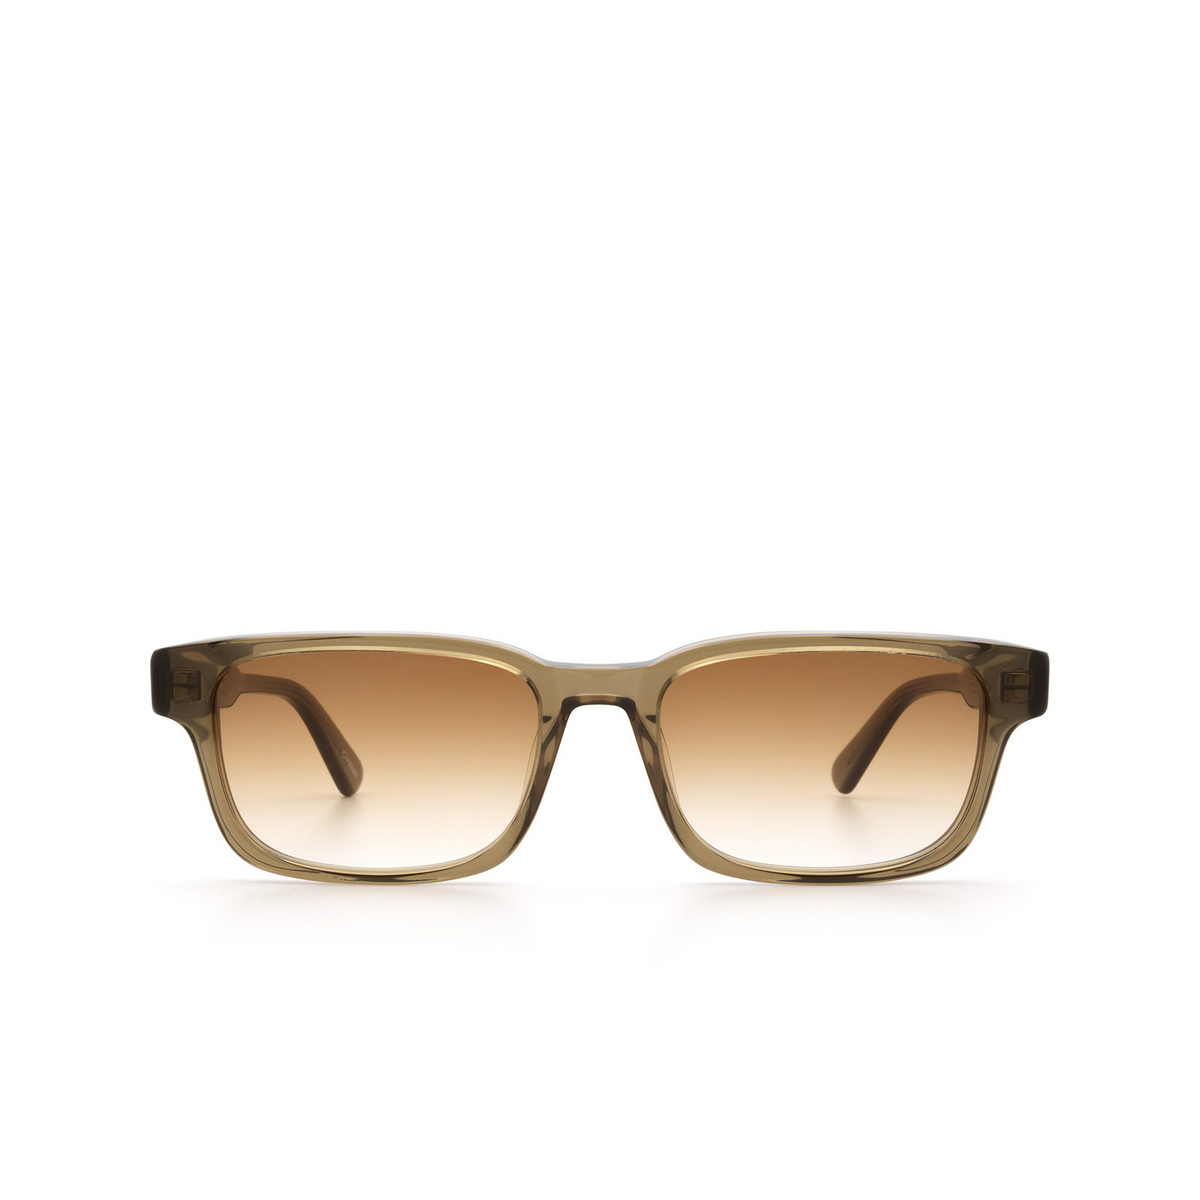 Chimi® Rectangle Sunglasses: #106 color Olive Green Green - front view.